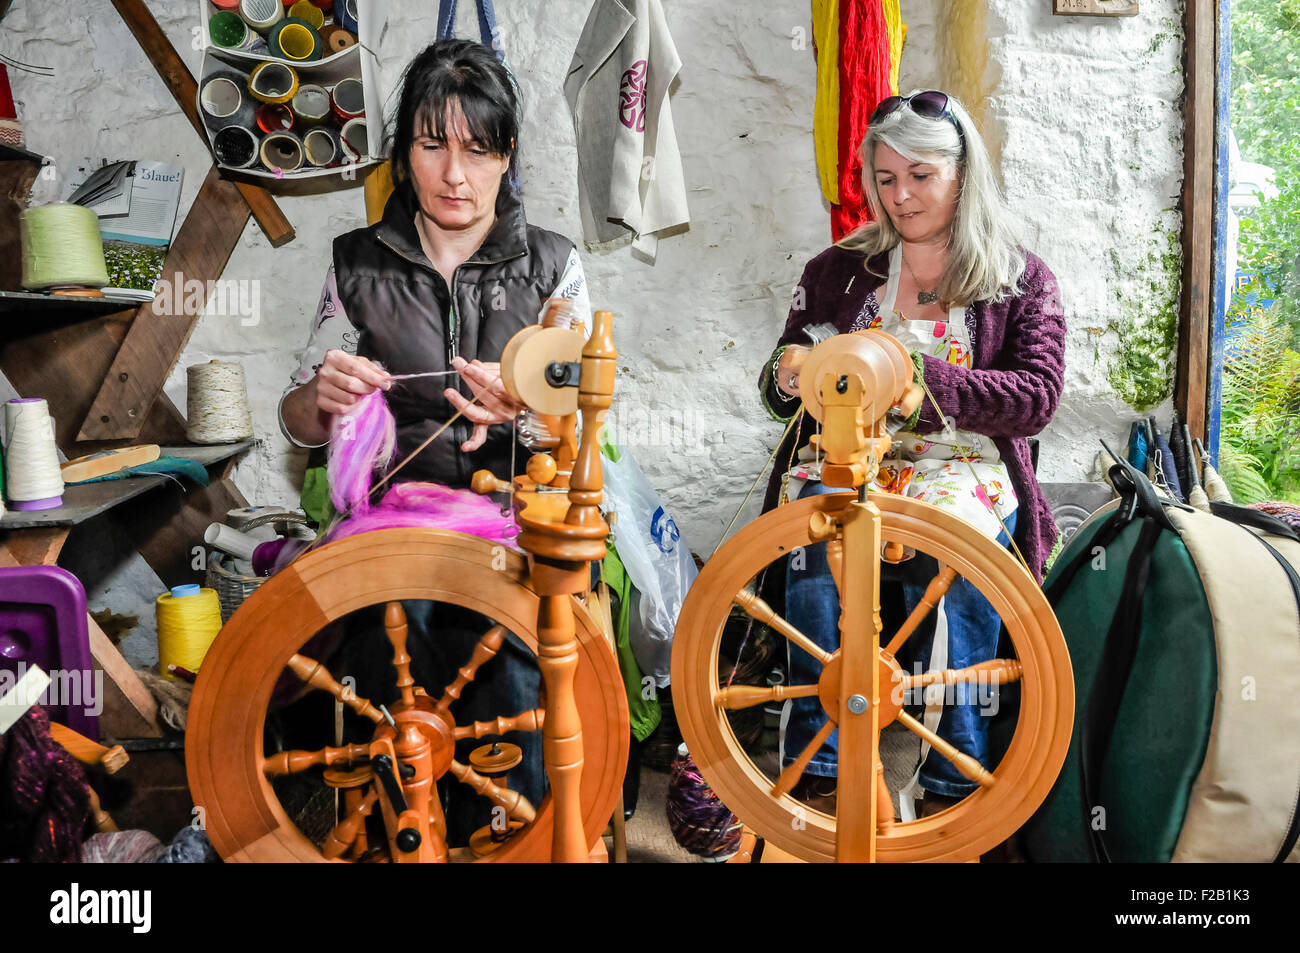 Two women spin wool using traditional spinning wheels. - Stock Image